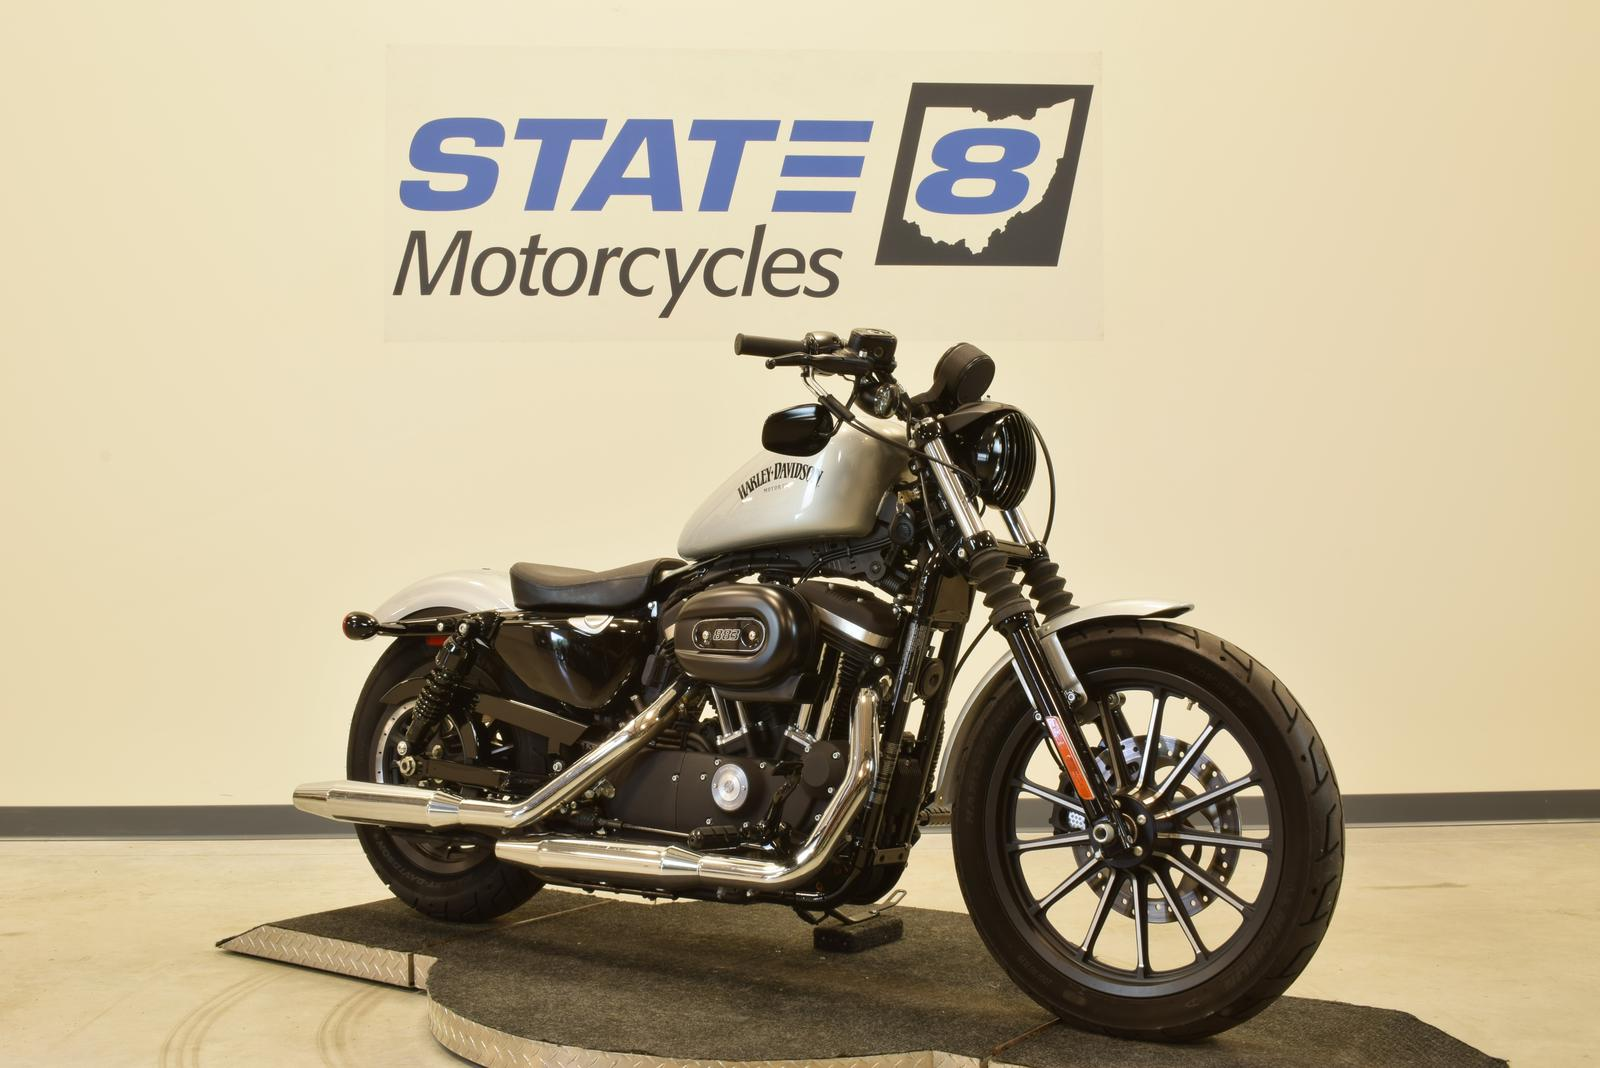 hight resolution of 2015 harley davidson xl883n sportster 883 iron for sale in 39446 1